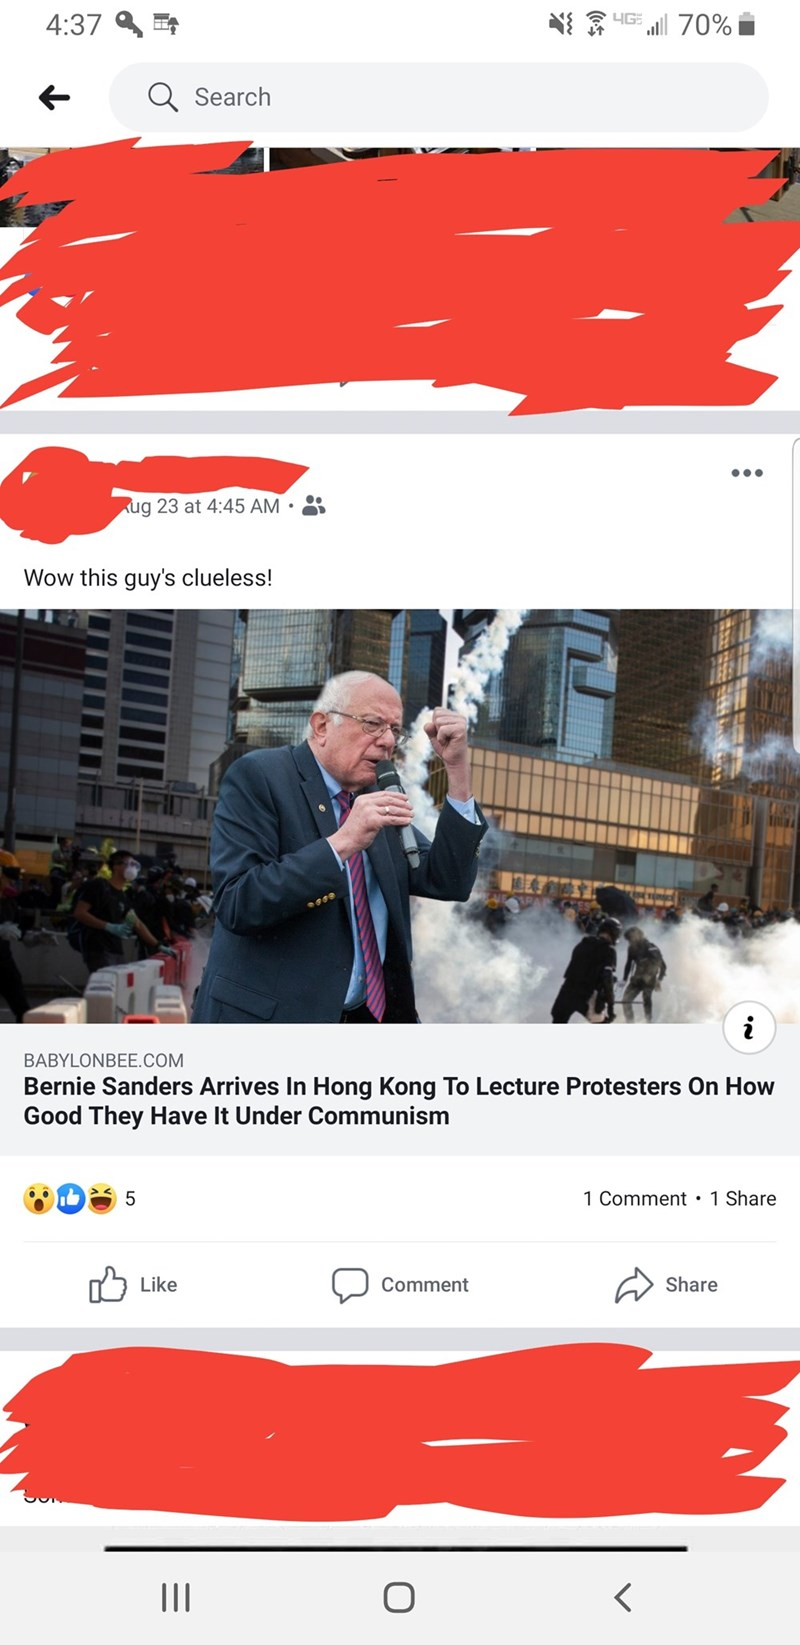 Font - 4G 4:37 70% Search ug 23 at 4:45 AM Wow this guy's clueless! i BABYLONBEE.COM Bernie Sanders Arrives In Hong Kong To Lecture Protesters On How Good They Have It Under Communism 1 Comment 1 Share 5 Like Share Comment O II